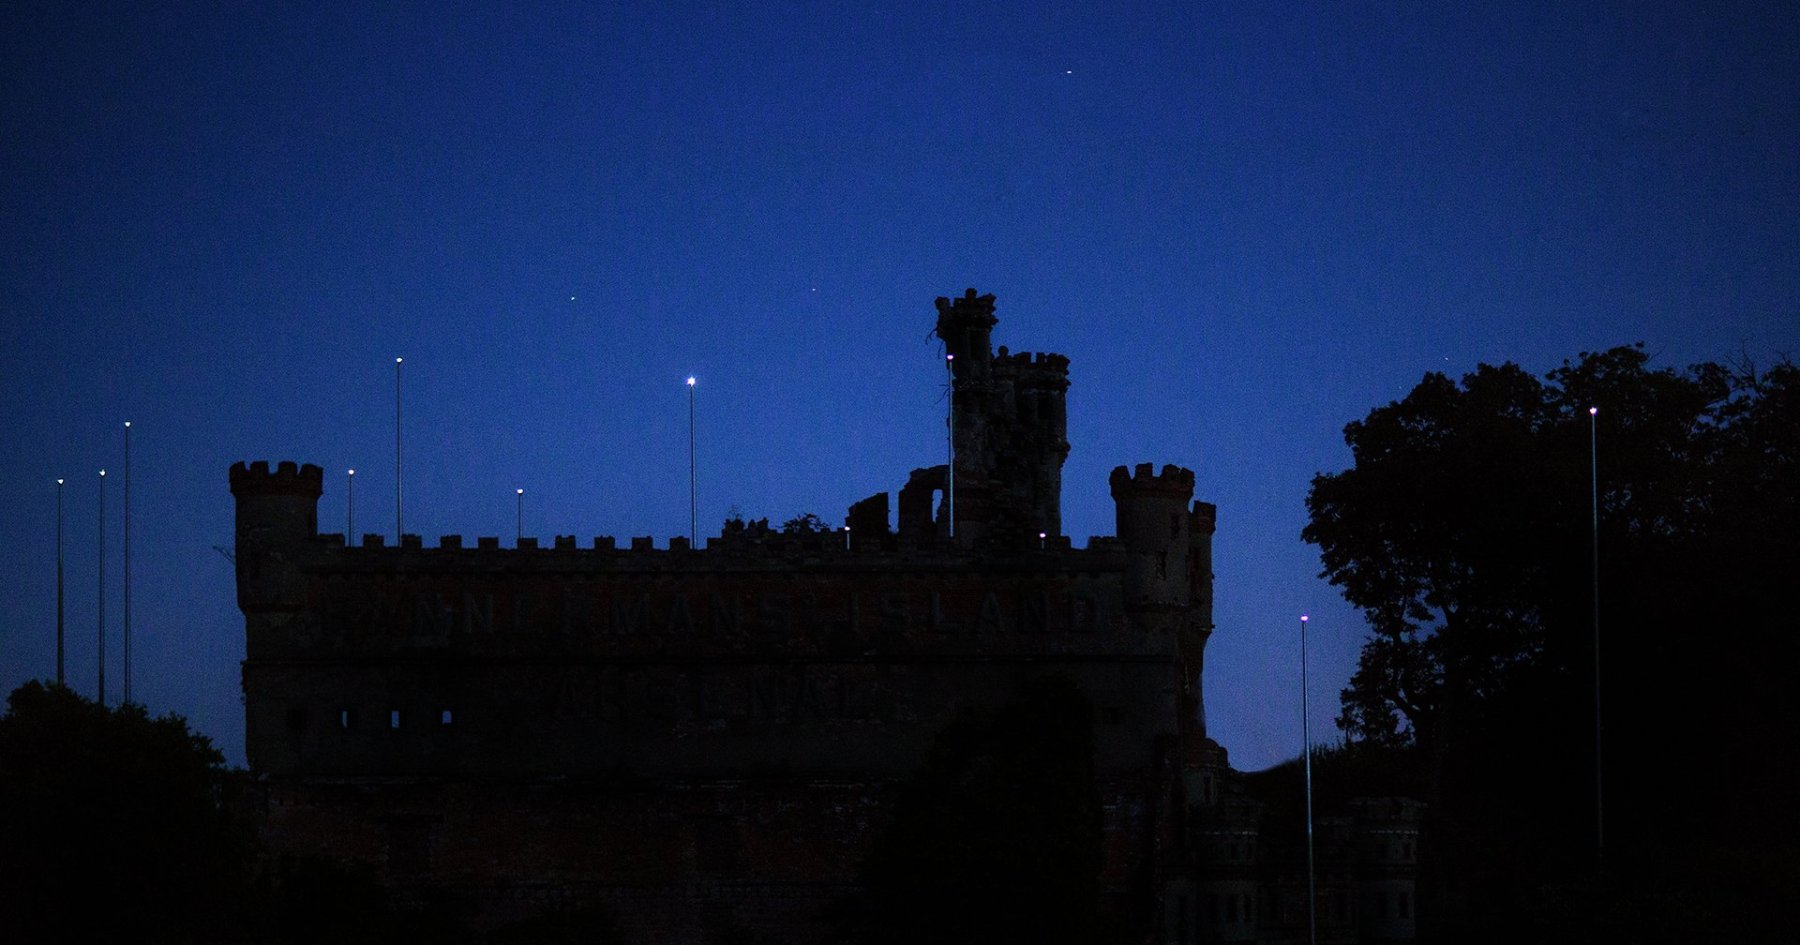 This Date Involves All-Day Rosé and Stargazing From a Castle